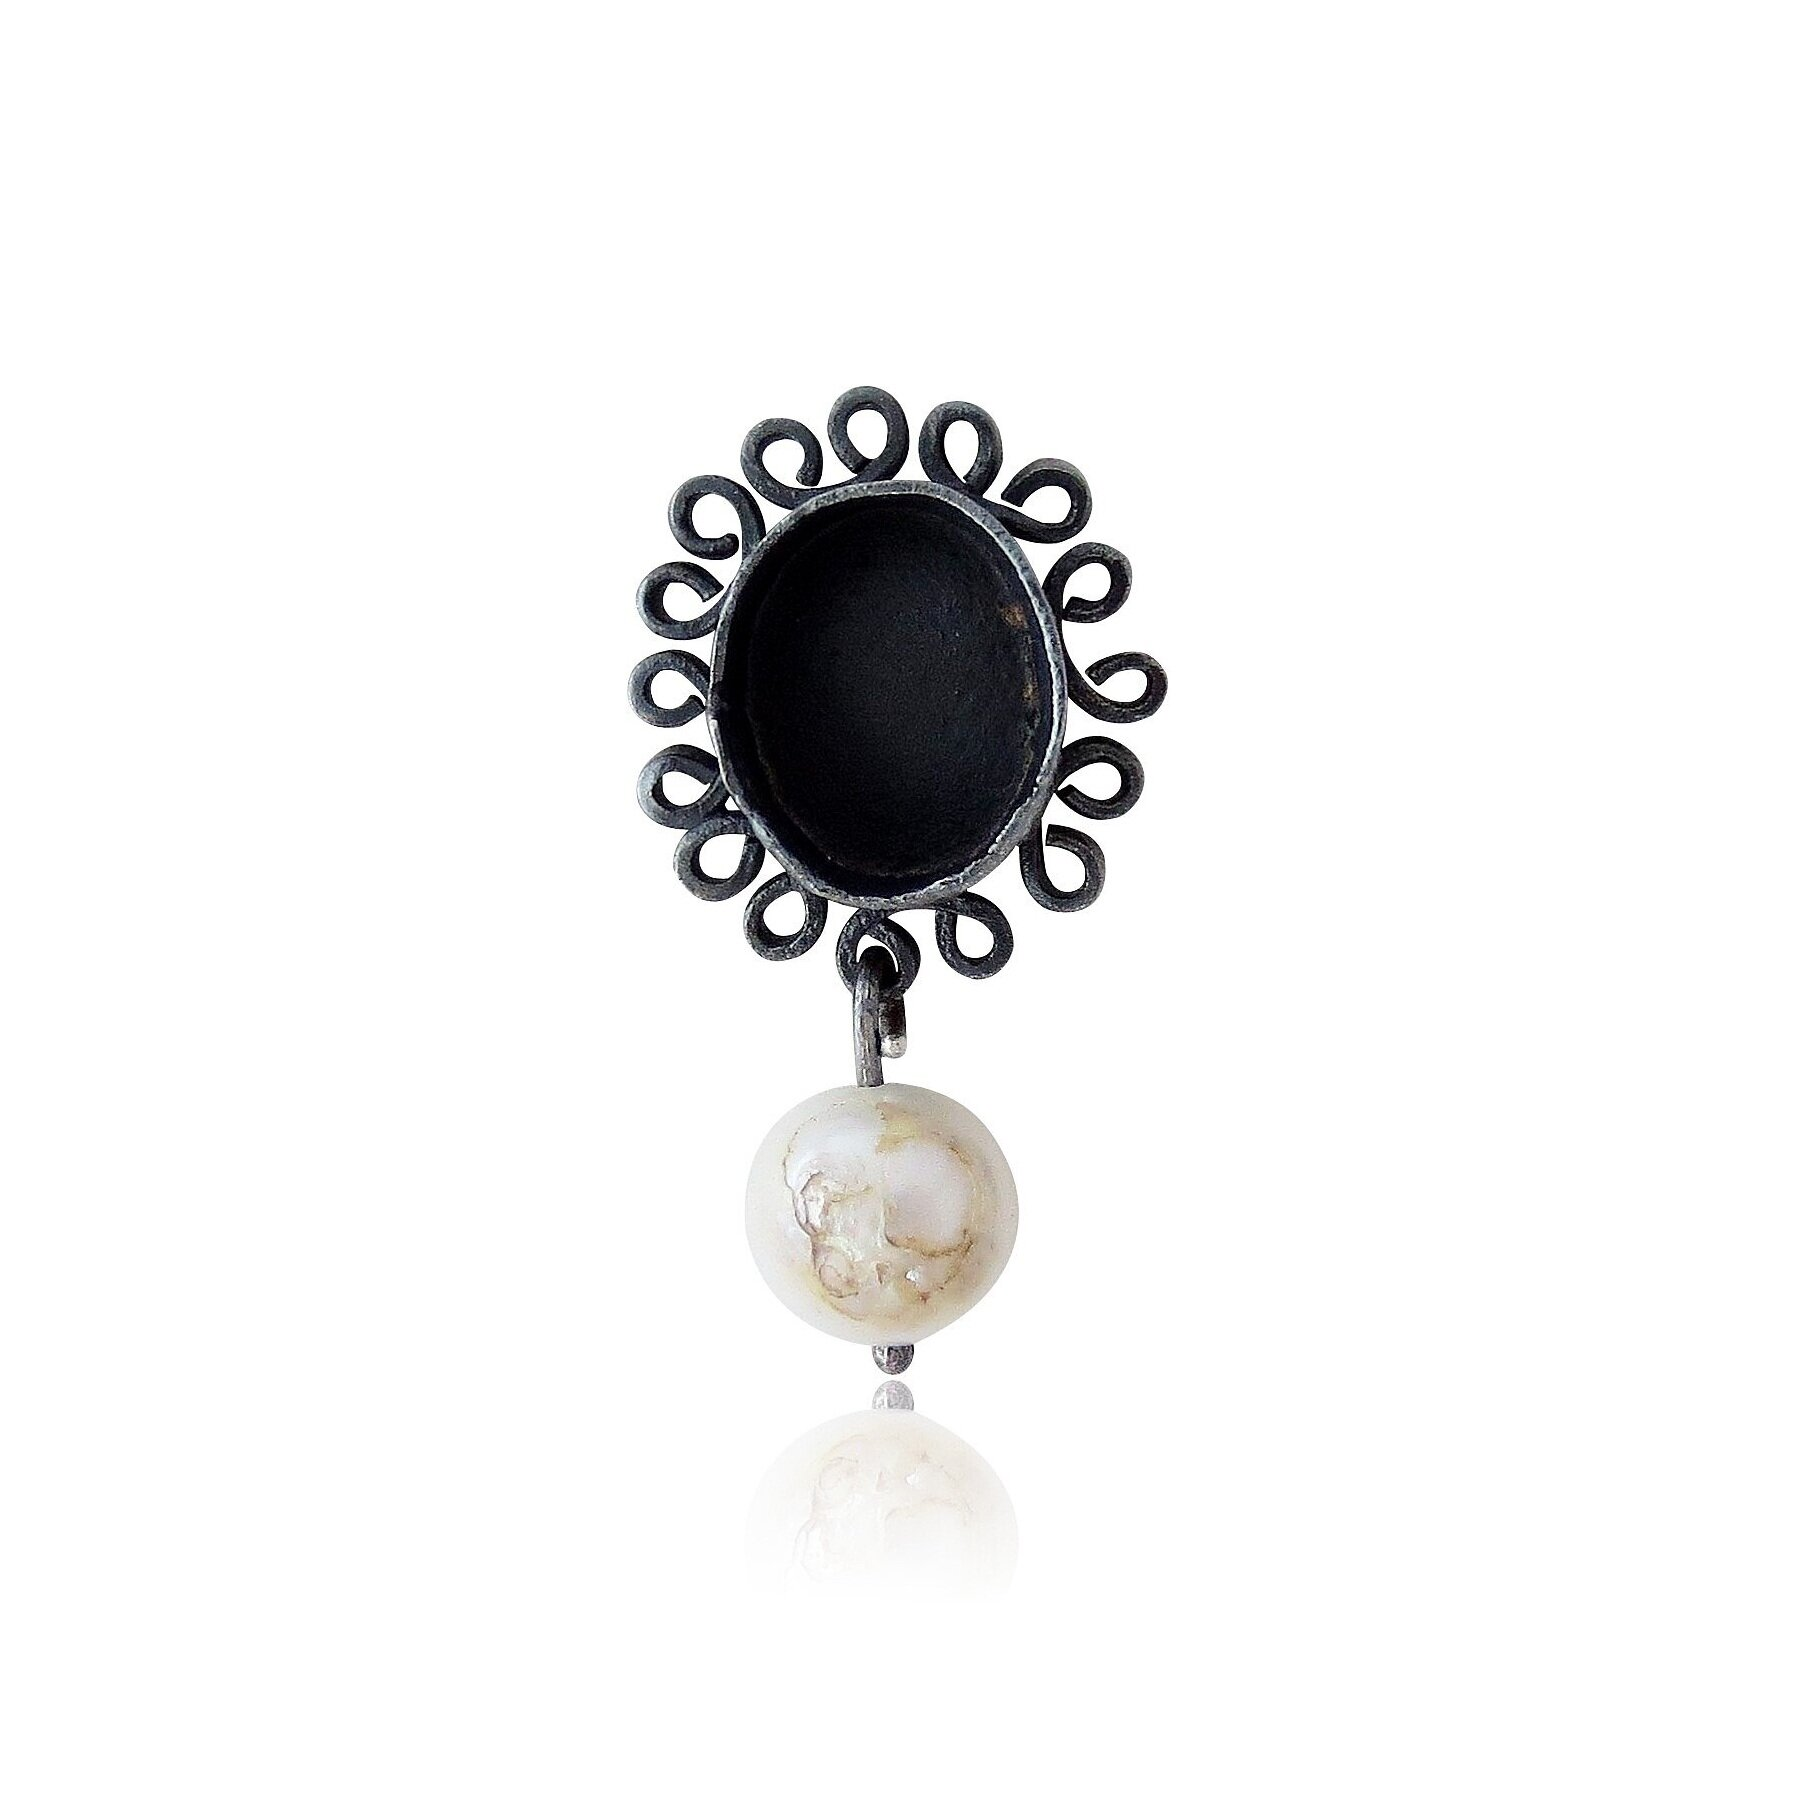 Oxidized sterling silver with freshwater pearl.